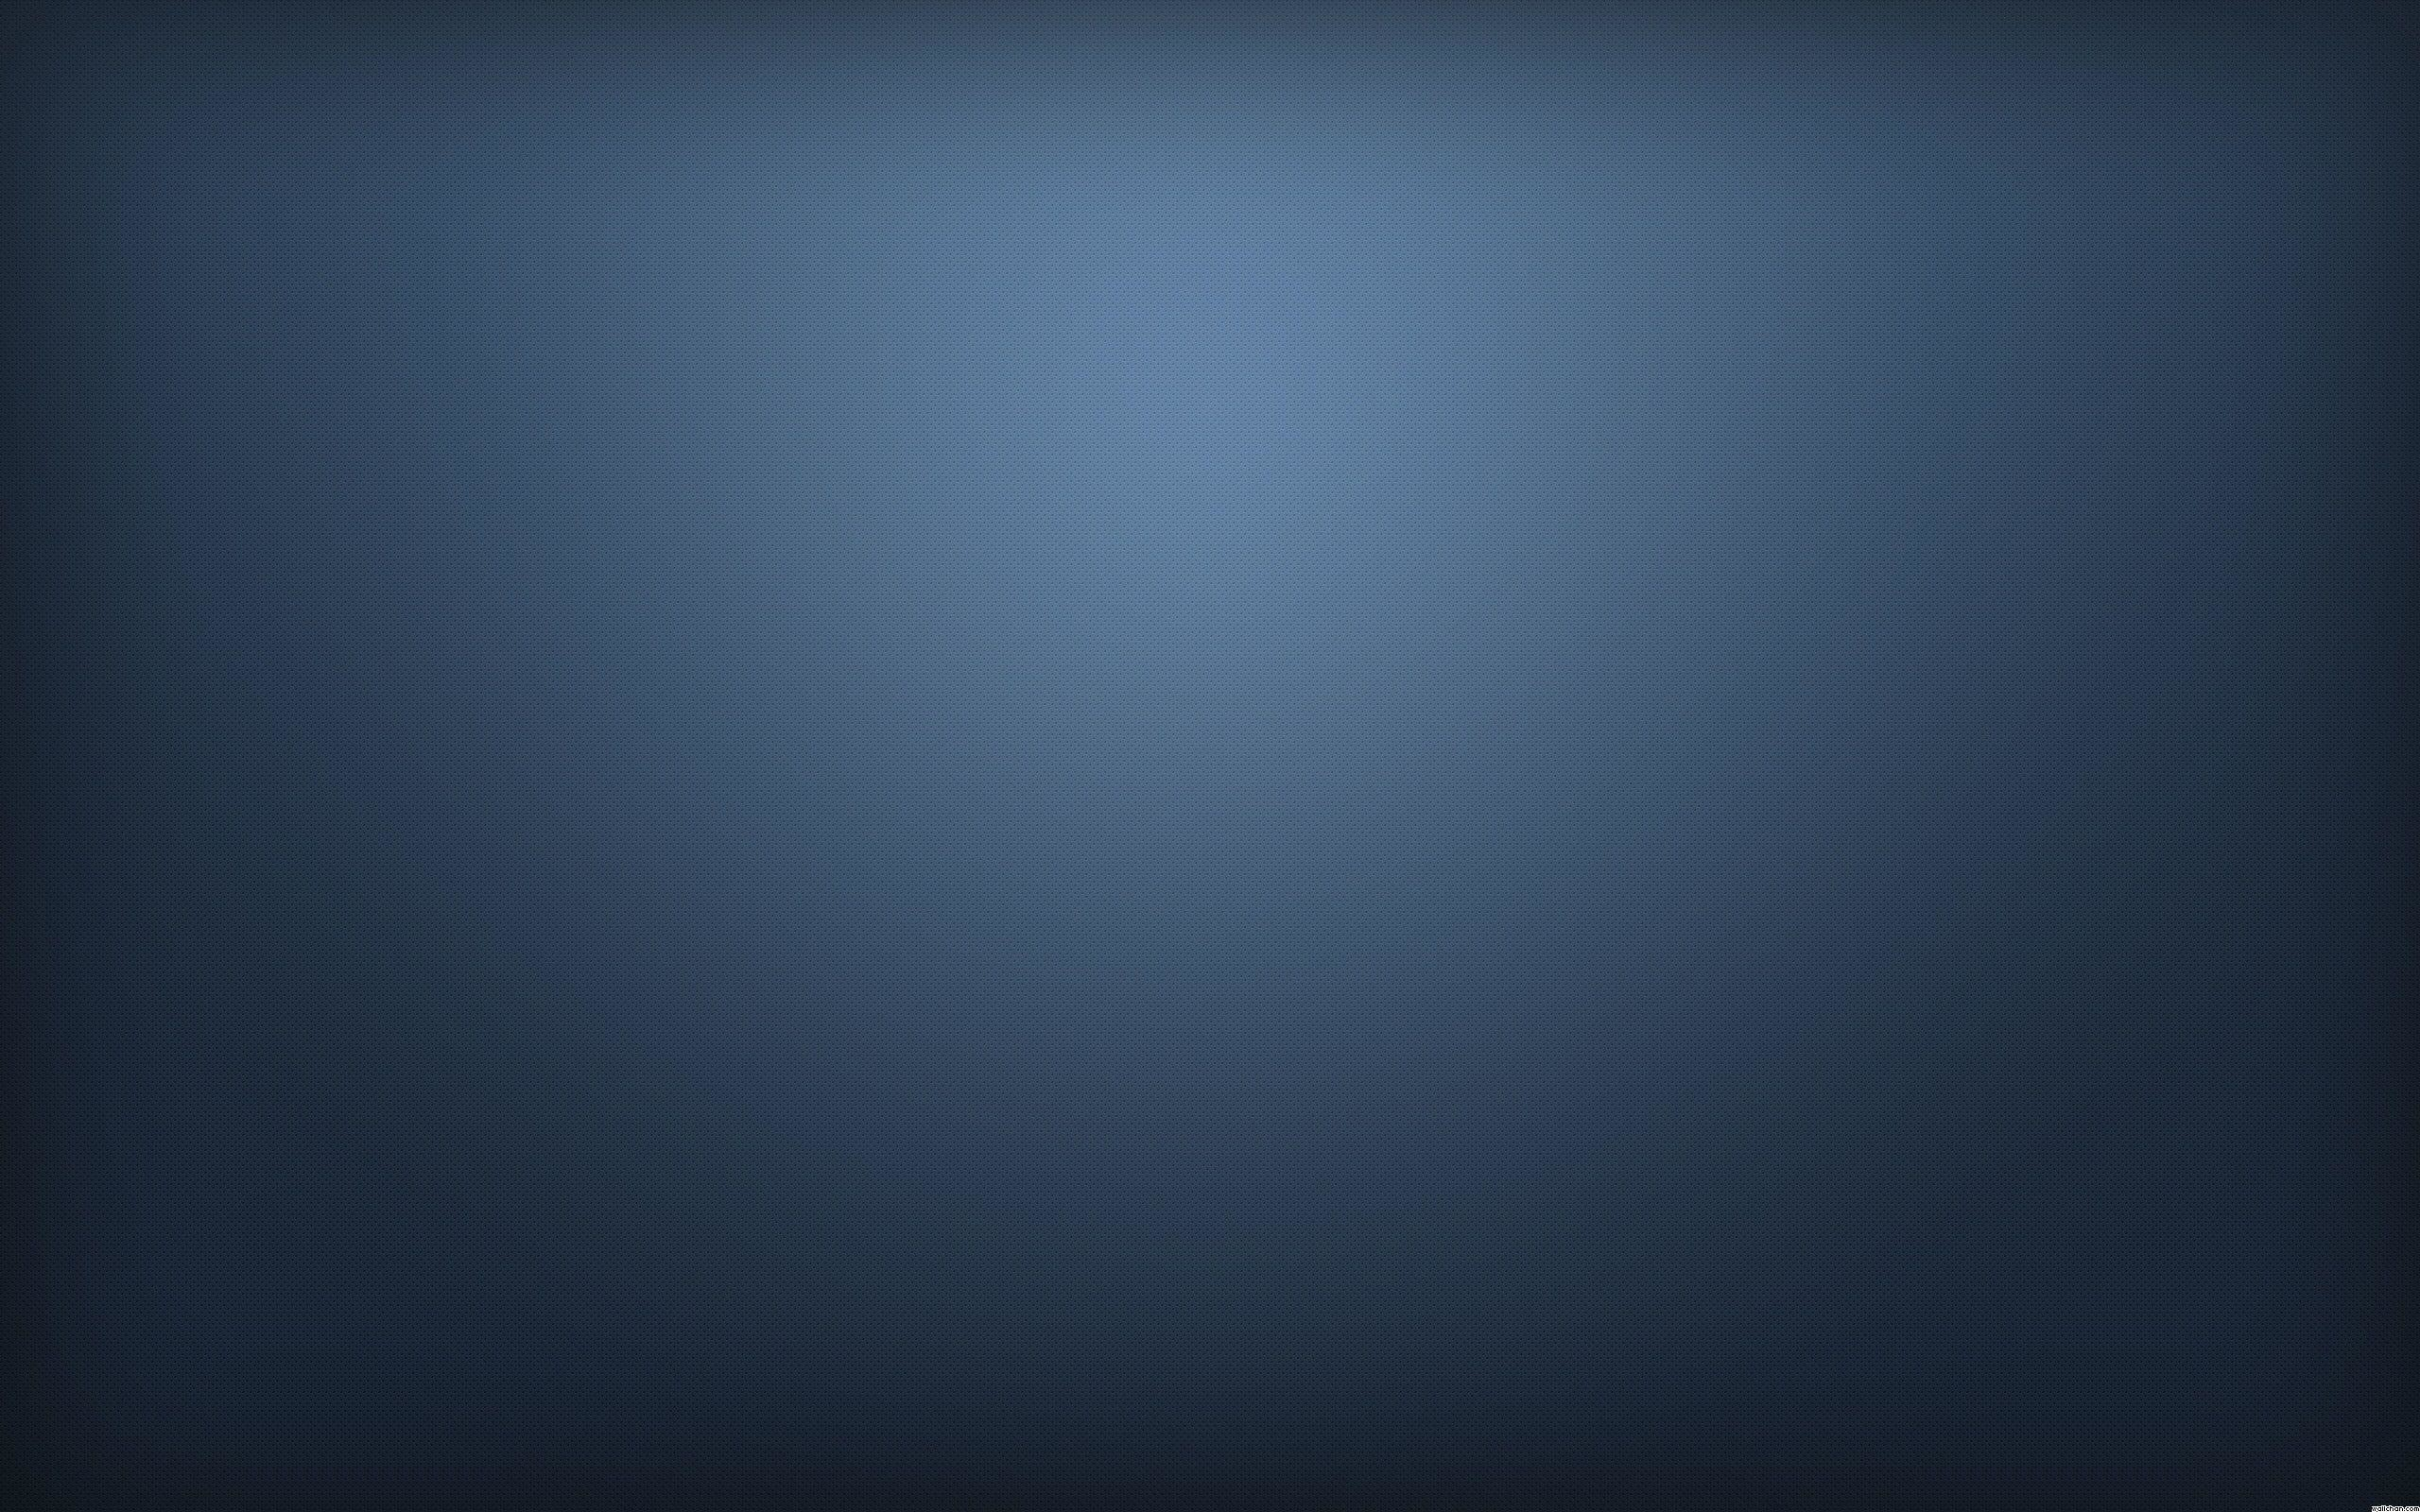 This is the 4k desktop background resolution for ultra high definition displays. Gradient 4k Wallpapers - Wallpaper Cave